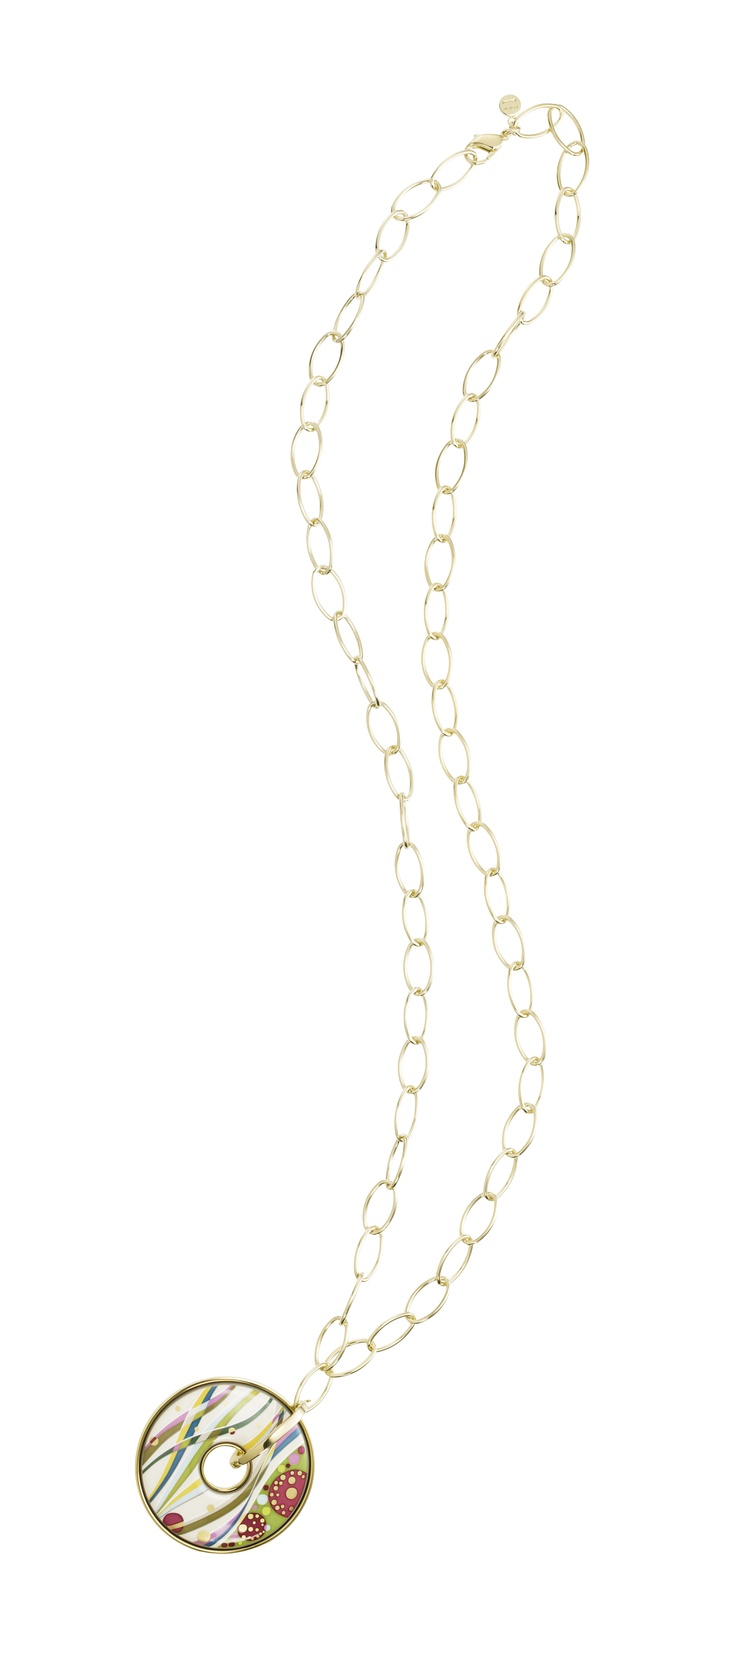 It will look perfect with a simple, white shirt!  Luna Piena necklace, Floral Symphony - First Love collection, FREYWILLE, Baneasa Shopping city